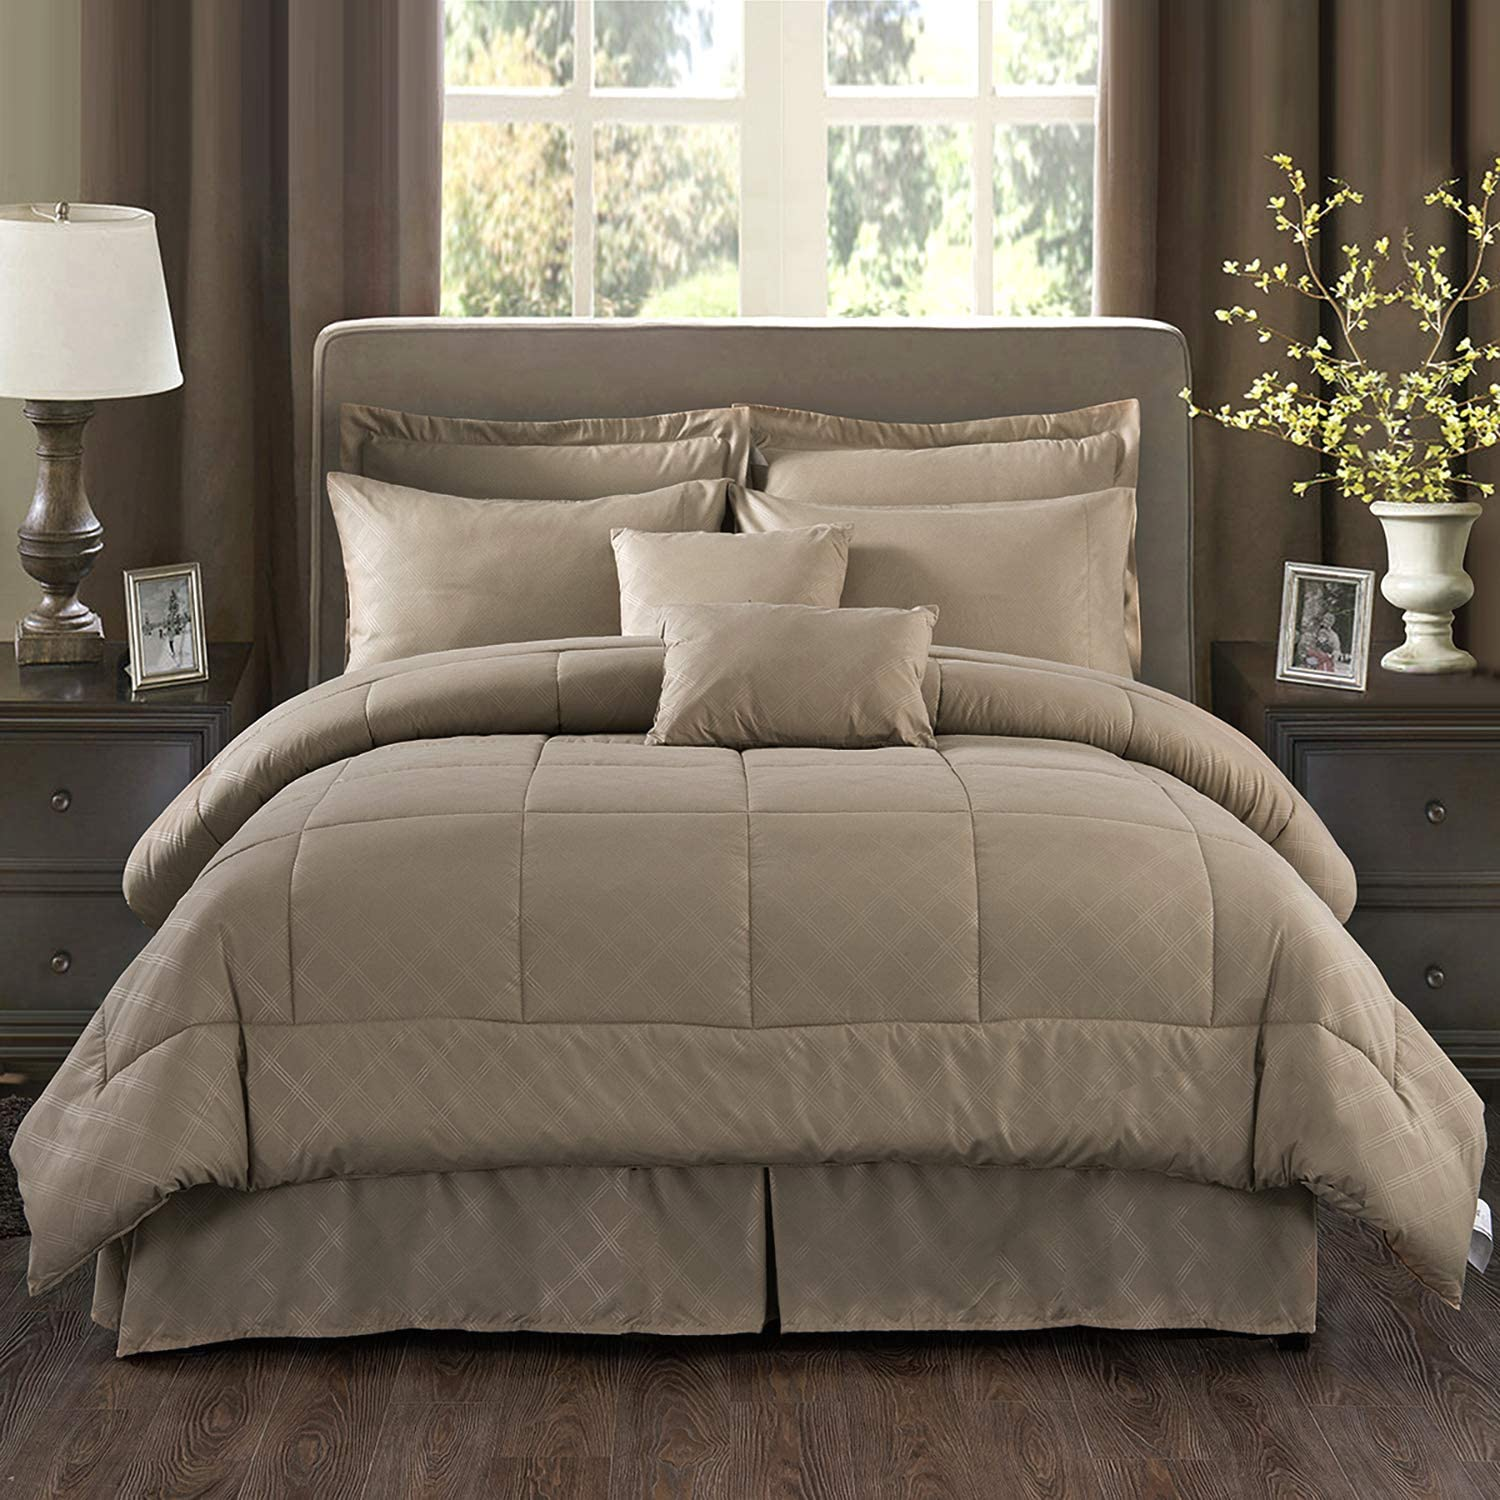 "MERRY HOME Comforter Set Queen, 10 Piece Comforter Bedding Set with Sheet Set Fit 14"" Deep Pocket - Plush Luxury Solid Color Quilted Pattern for All Season, Taupe"